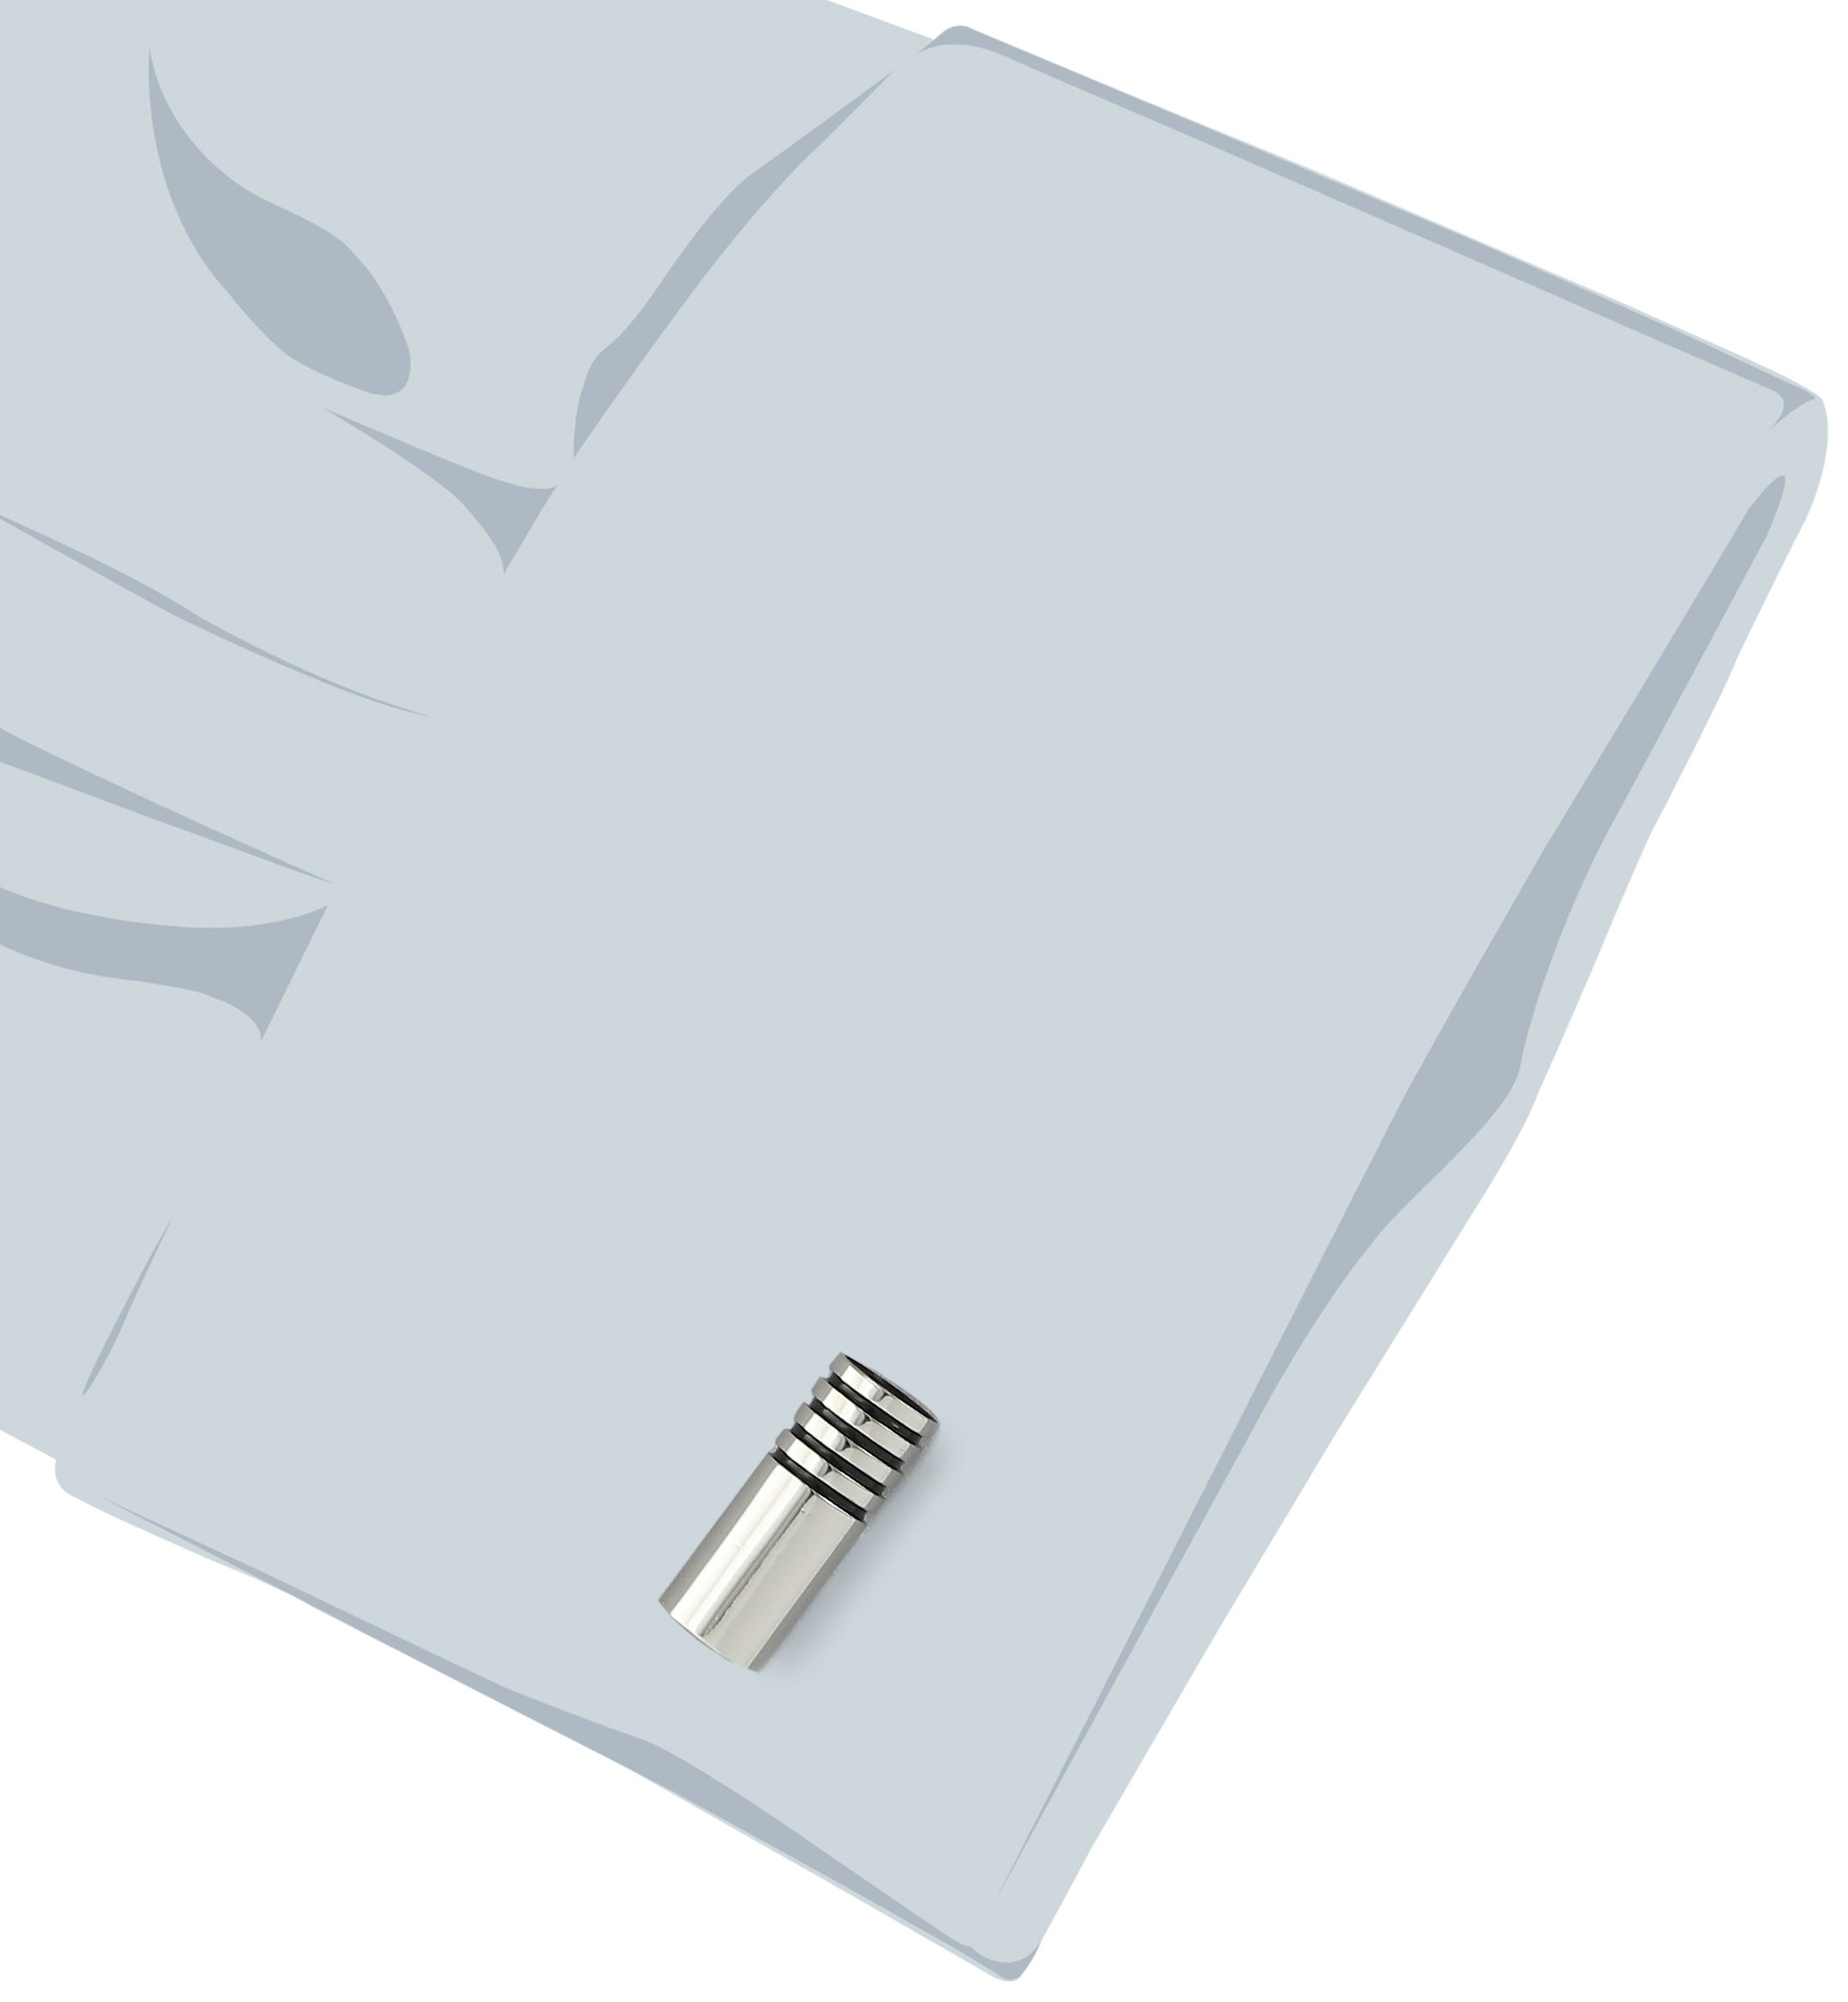 Stacy Adams Men's Barrel Cuff Link With Jet, Silver, One Size by Stacy Adams (Image #2)